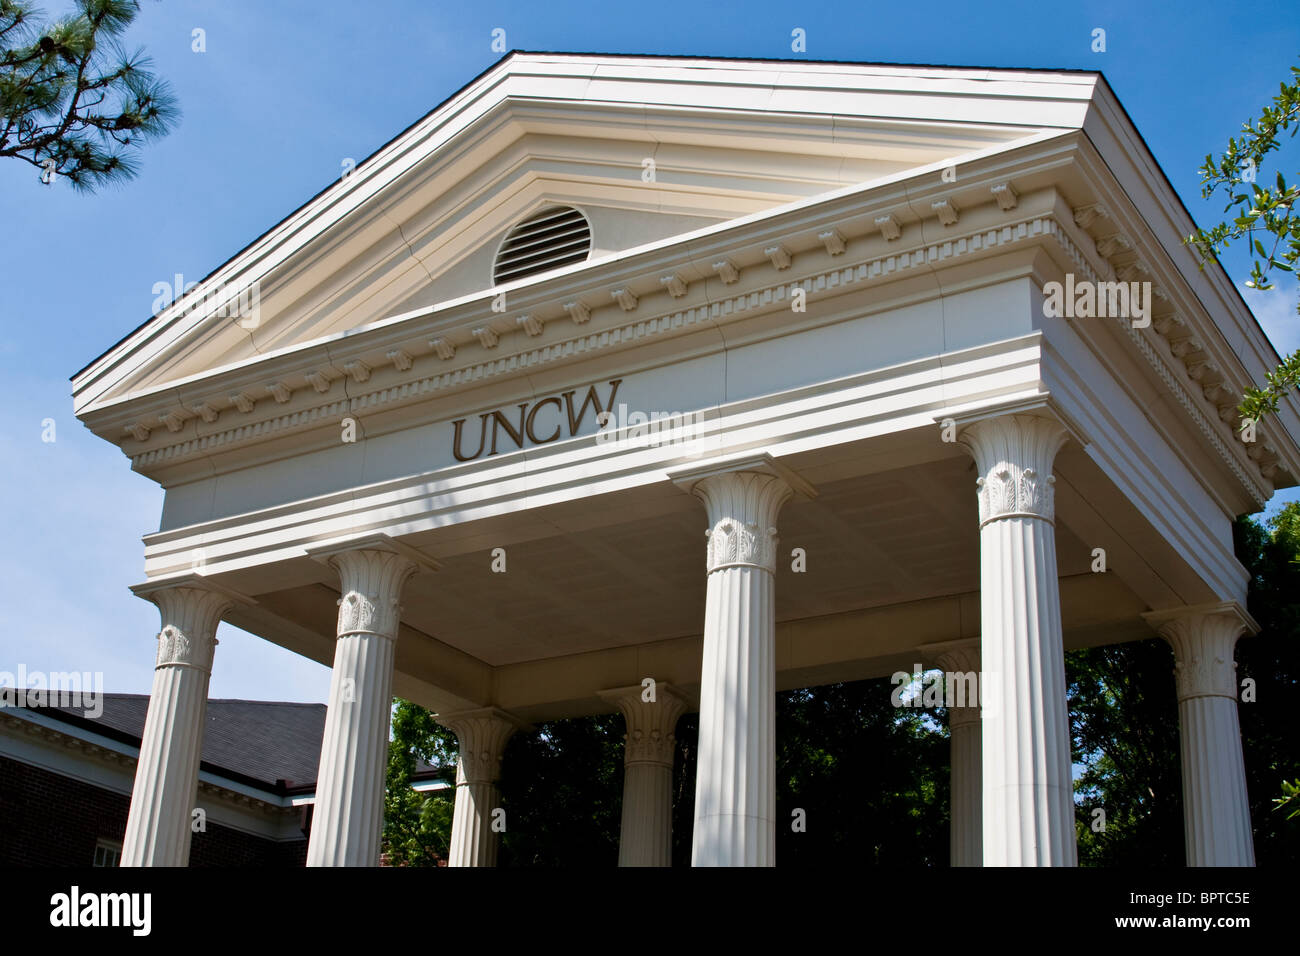 Columned archway at the University of North Carolina in Wilmington. Stock Photo